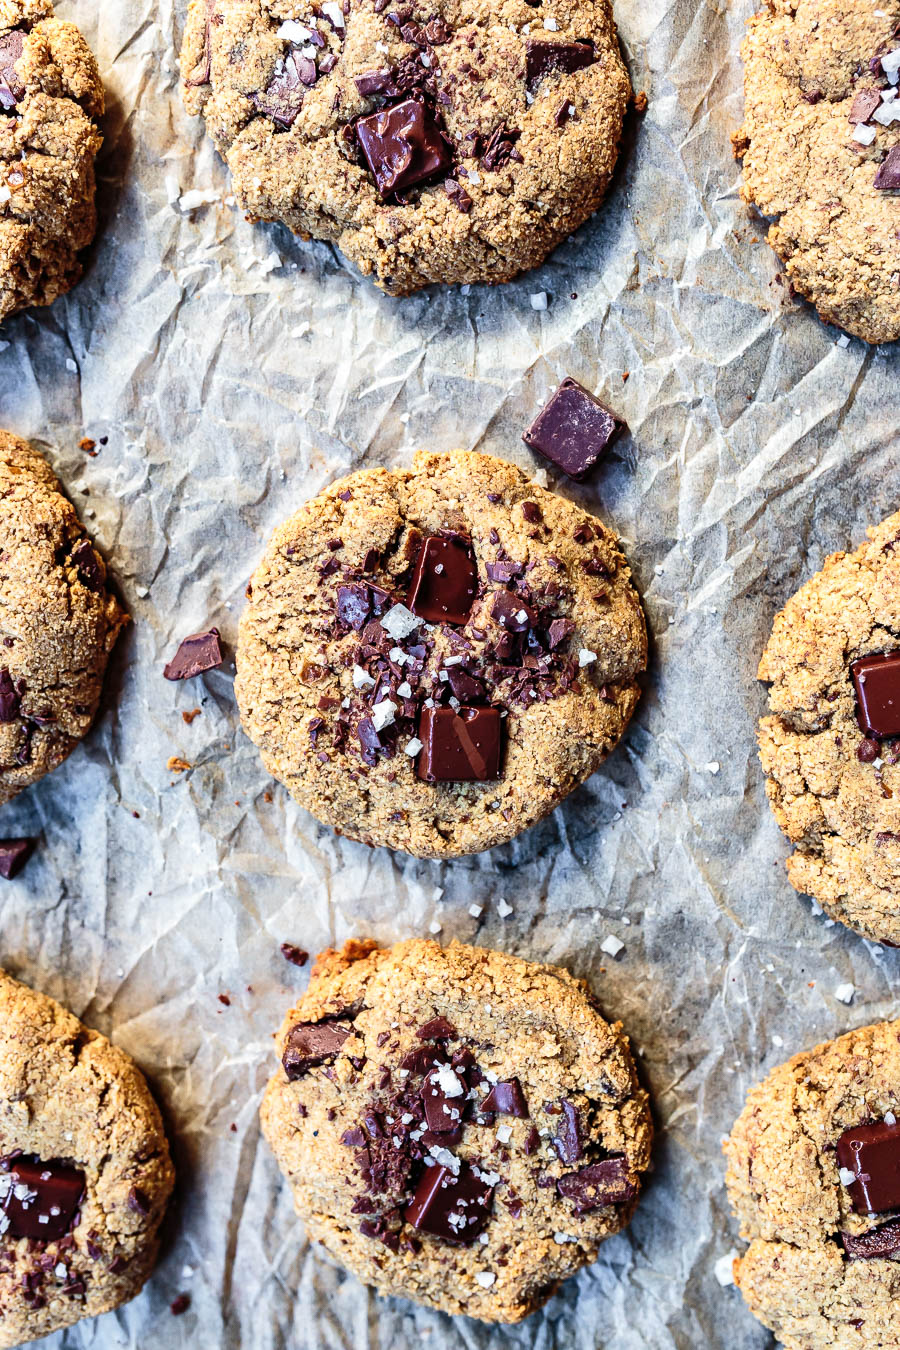 soft-baked chocolate chip cookies in a lined baking sheet